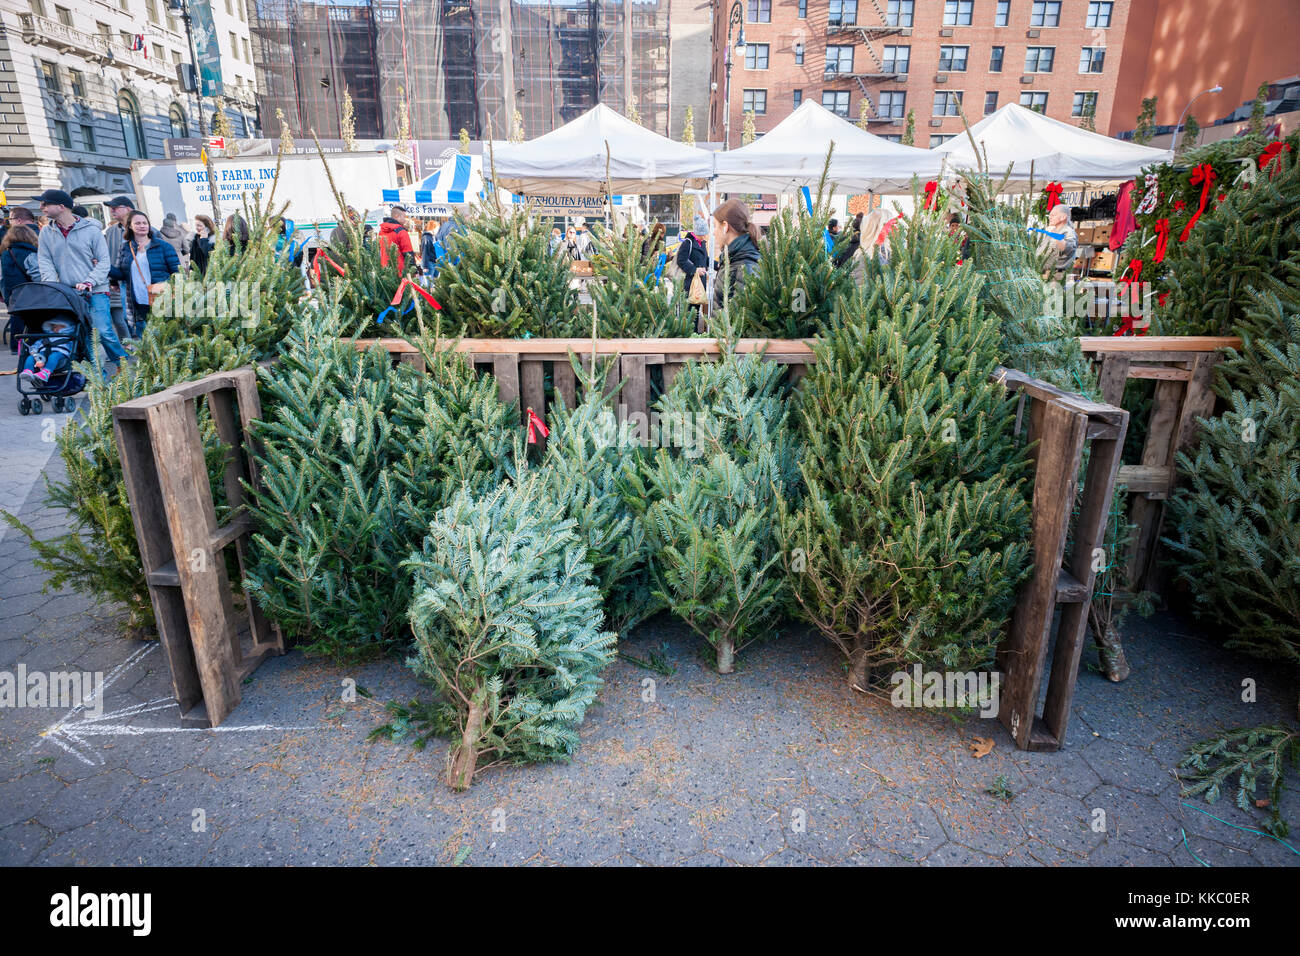 Christmas Trees For Sale In The Union Square Greenmarket In New York